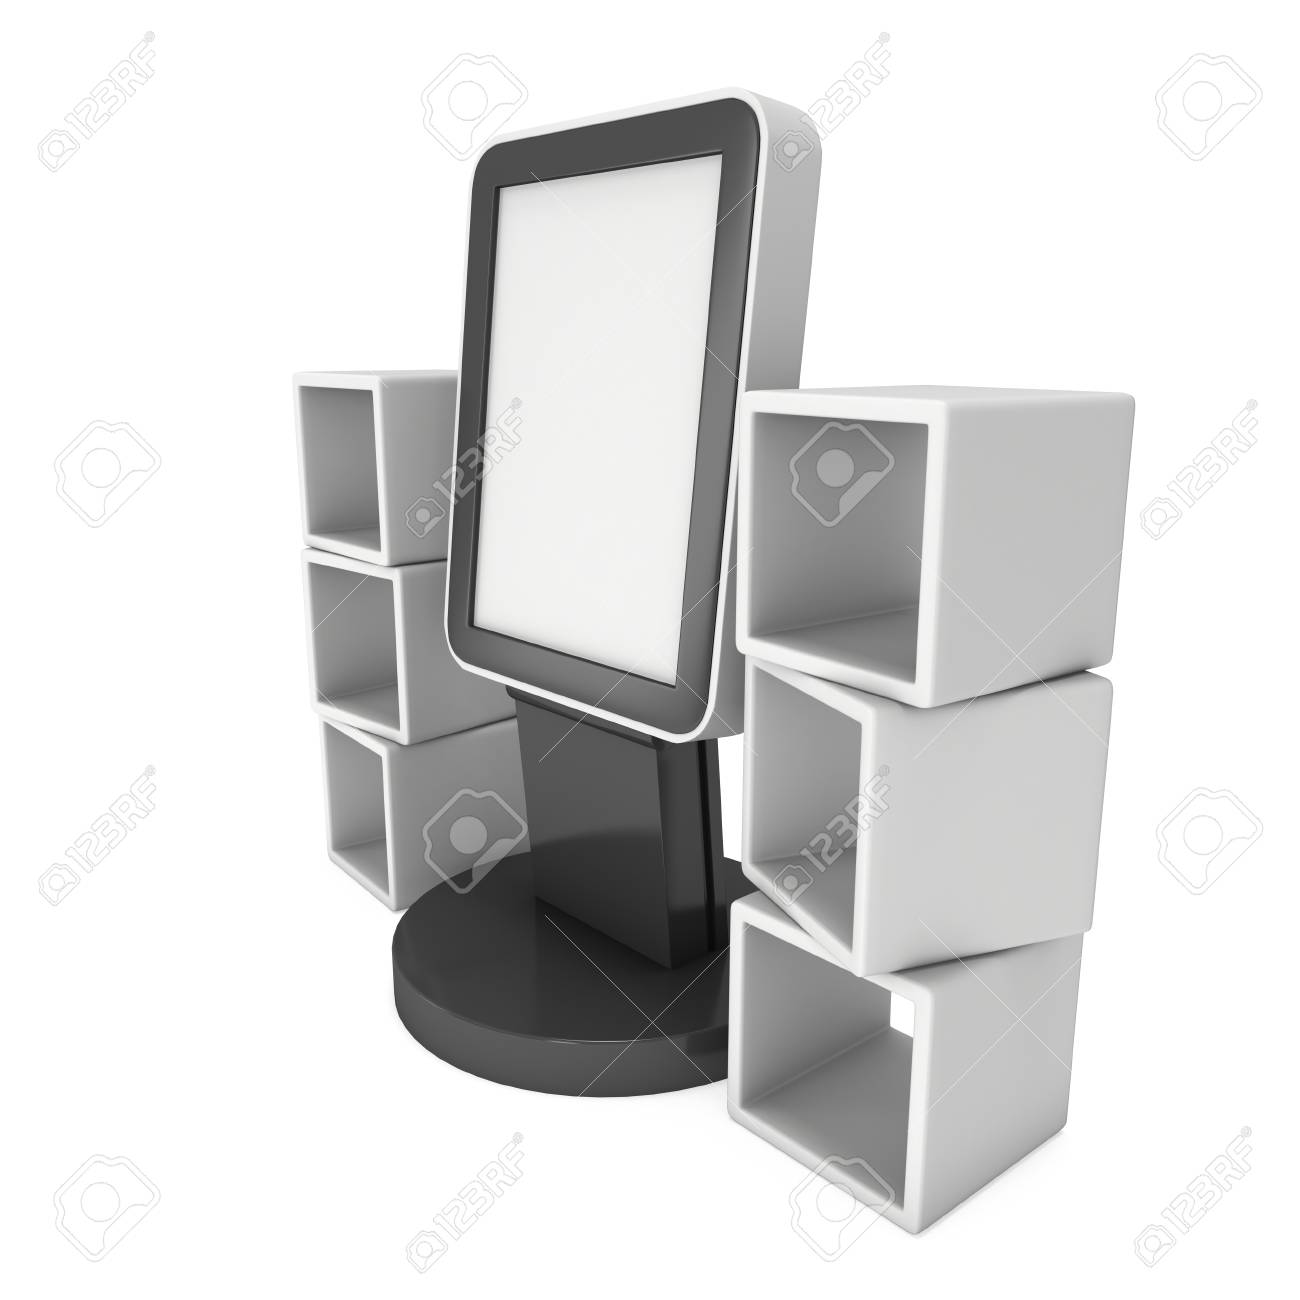 lcd display stand and product display boxes blank trade show booth 3d render isolated